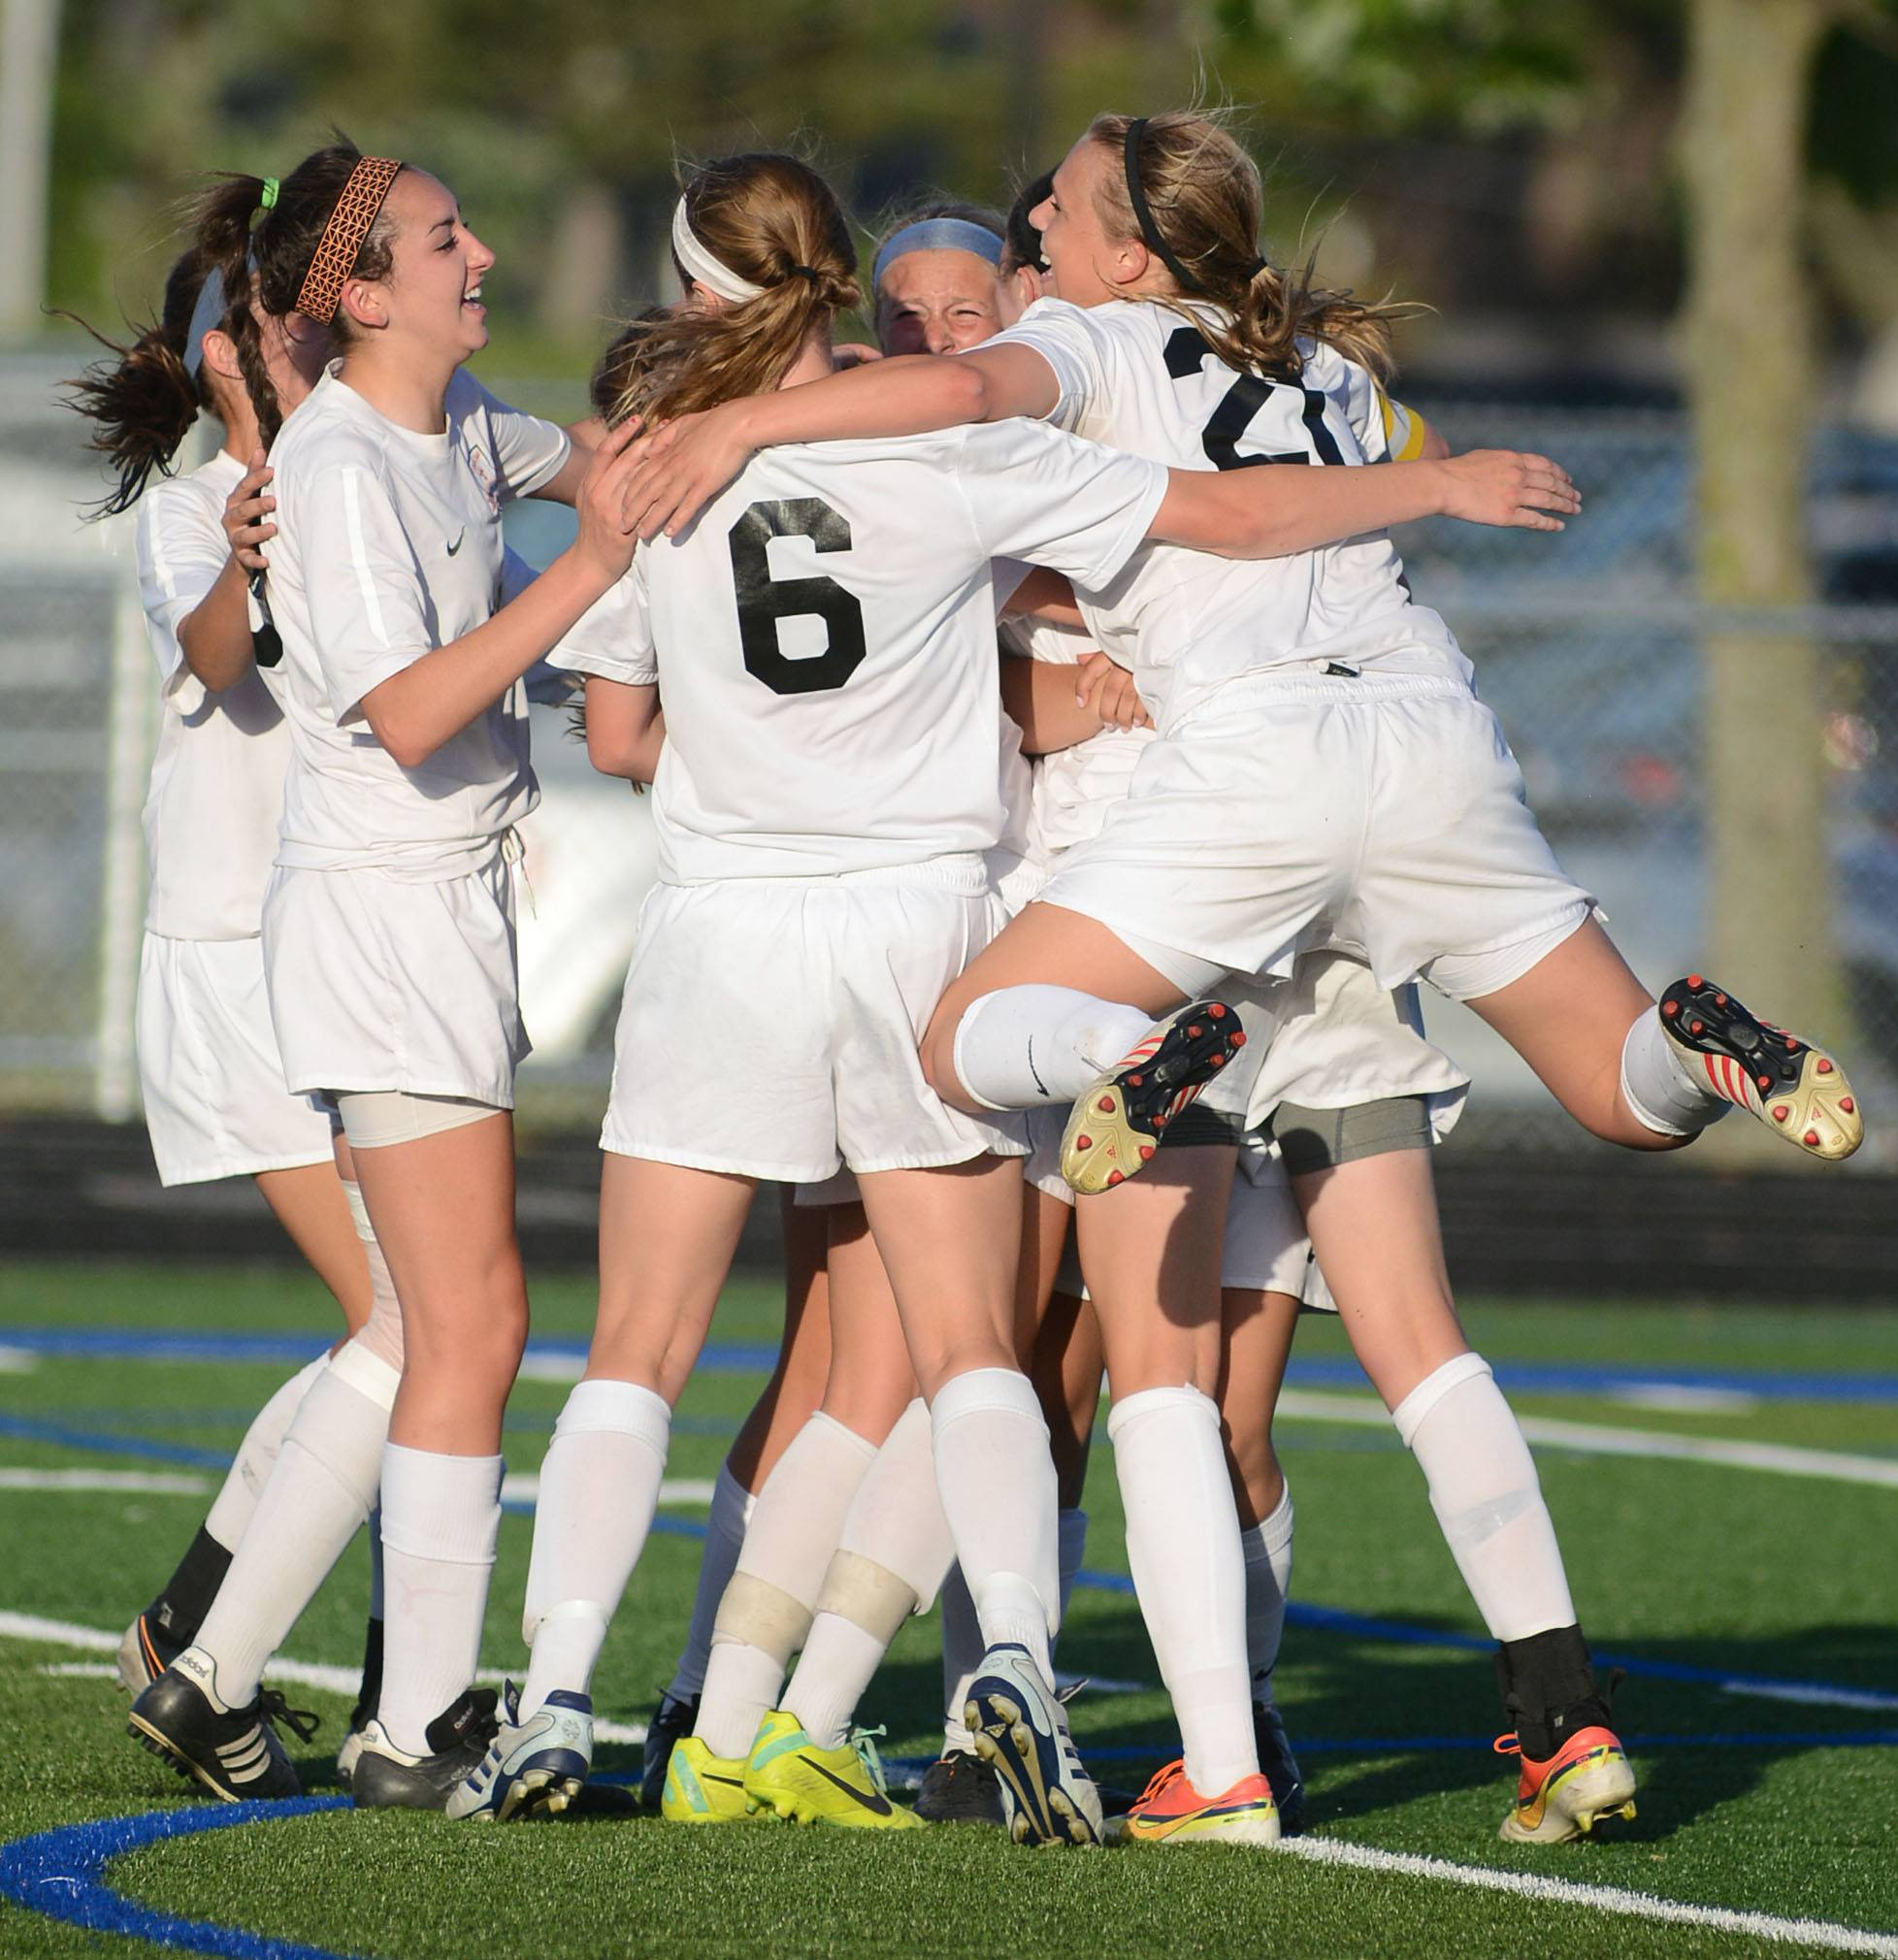 St. Charles East's Amanda Hilton leaps onto her teammates as they celebrate Rion Gaffney's goal in the second half over Huntley in the Class 3A girls soccer supersectional at Lake Park High School in Roselle on Tuesday, June 3.